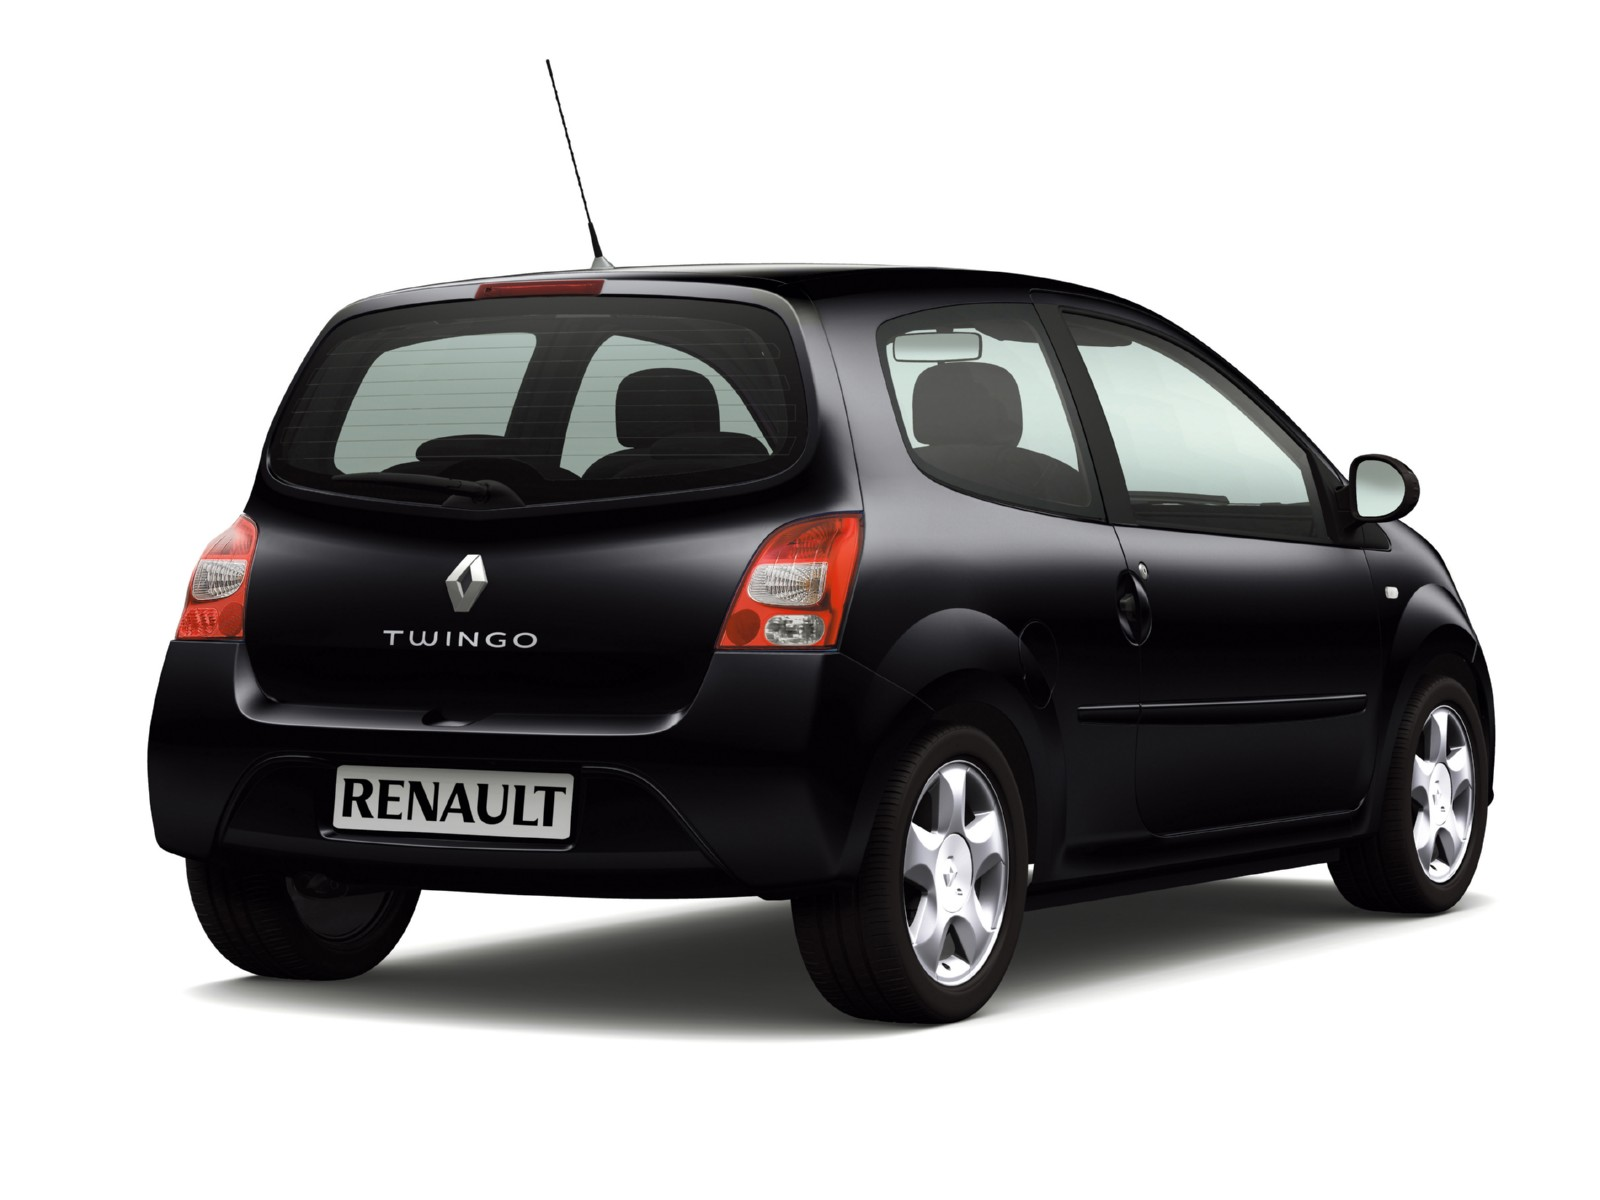 nouvelle renault twingo 2 toutes les infos et photos. Black Bedroom Furniture Sets. Home Design Ideas